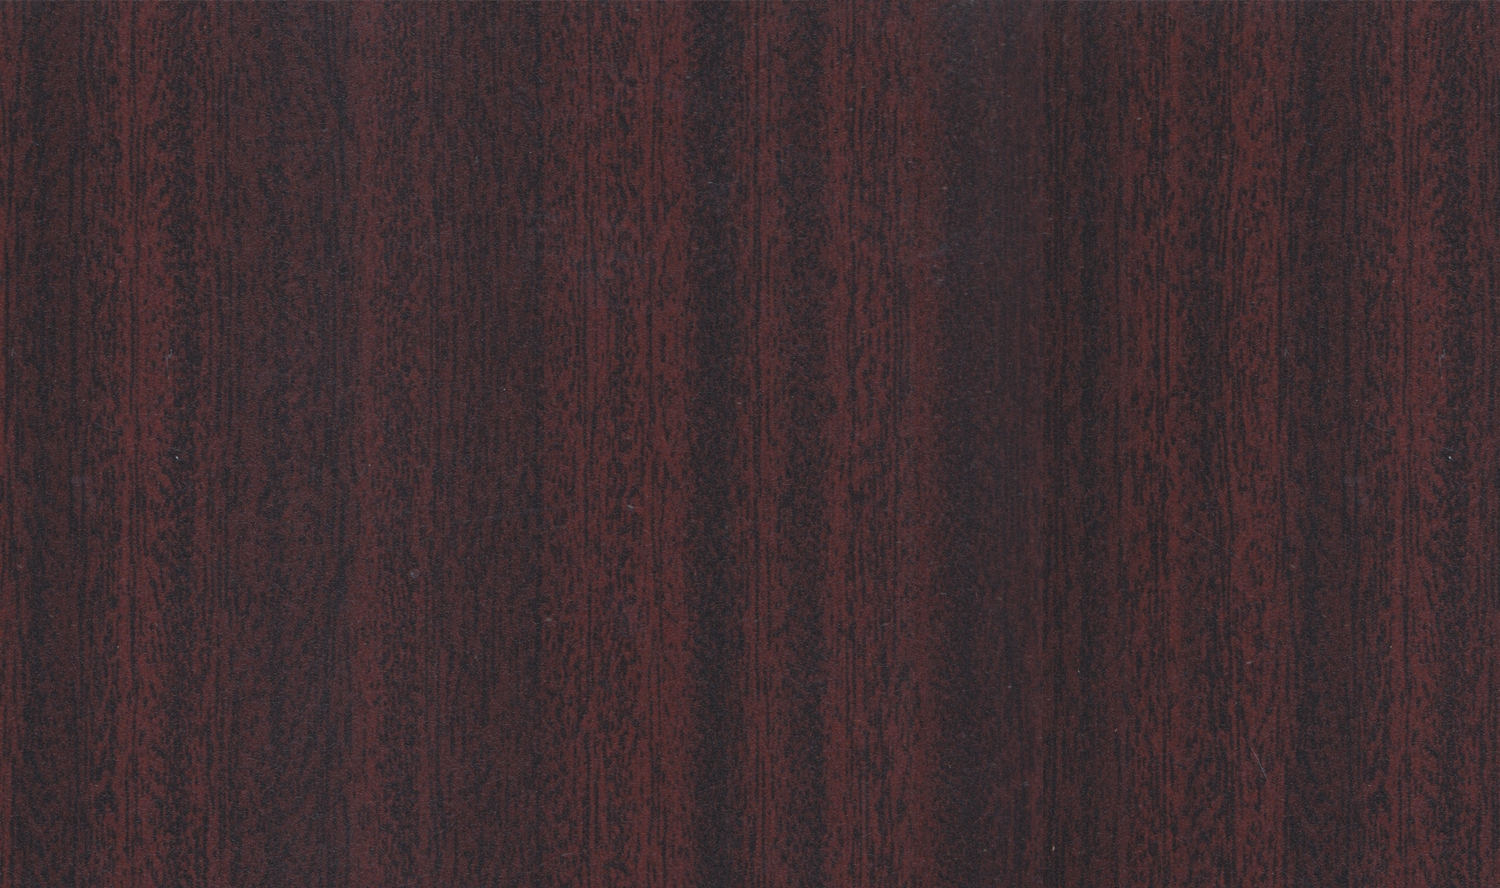 1MM International Laminate Lookbook - Sundek International